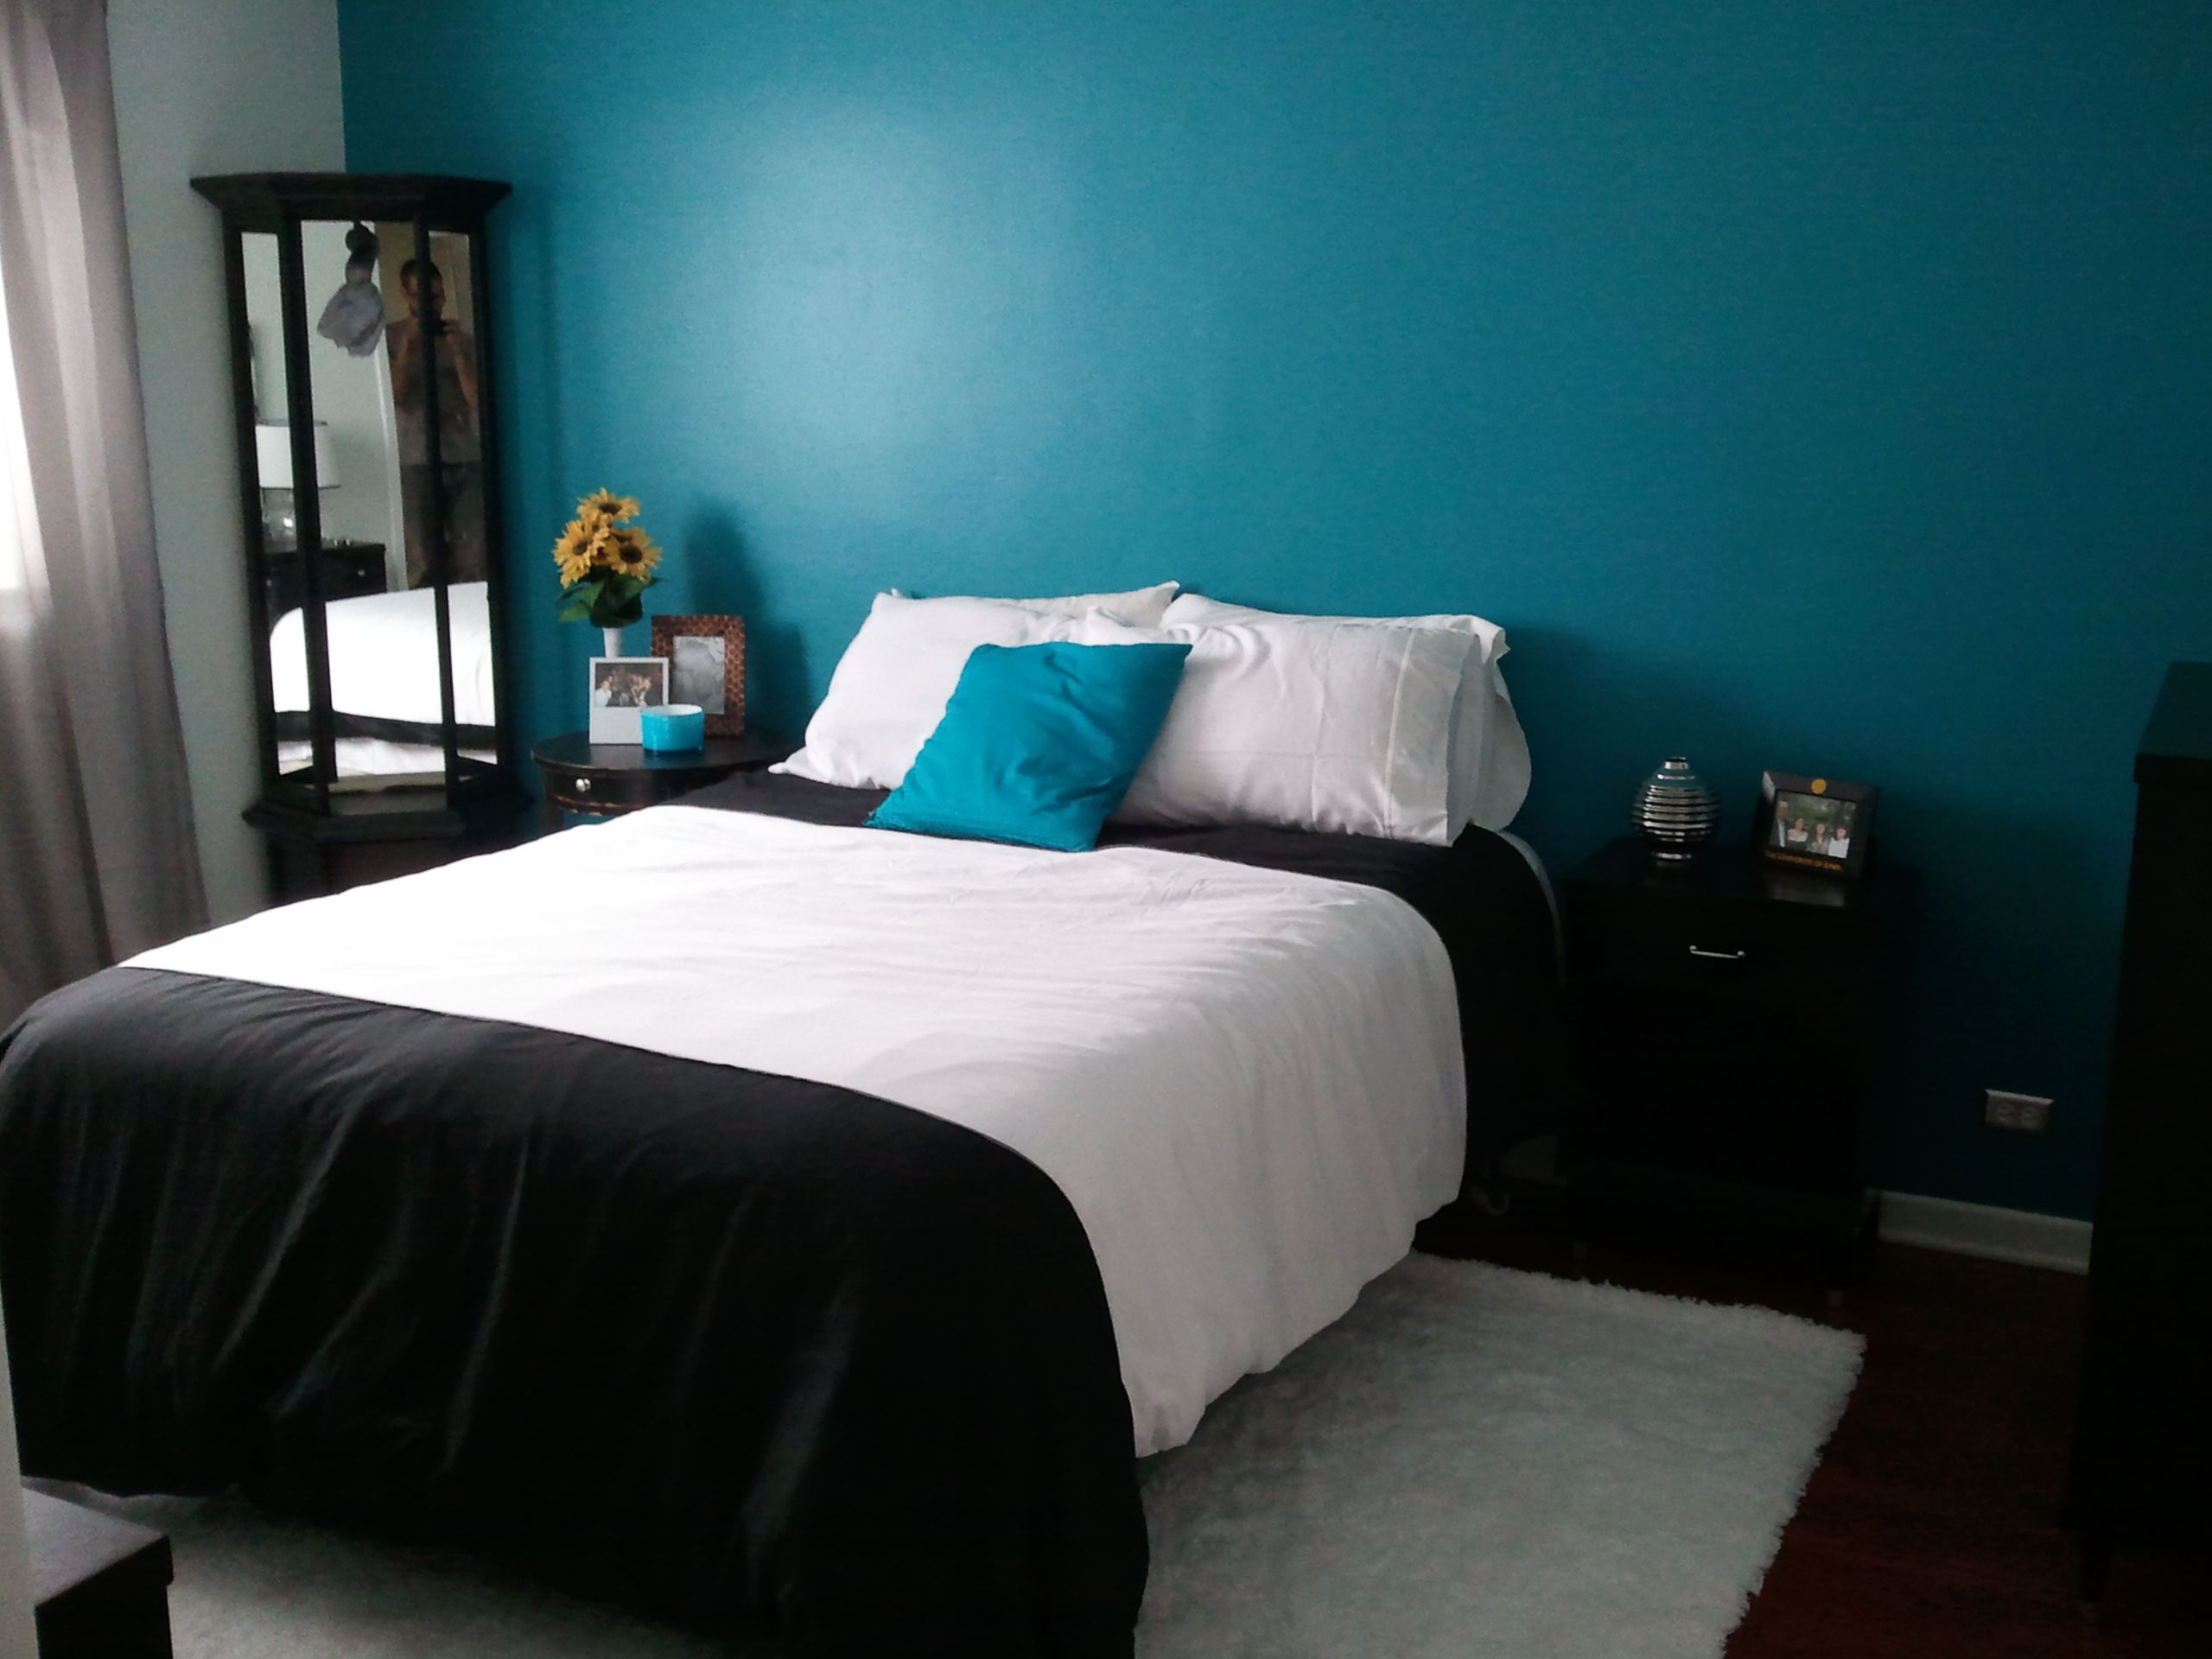 10 Brilliant Turquoise Room Ideas To Freshen Up Your Home Teal Bedroom Decor Grey Bedroom Design Bedroom Turquoise